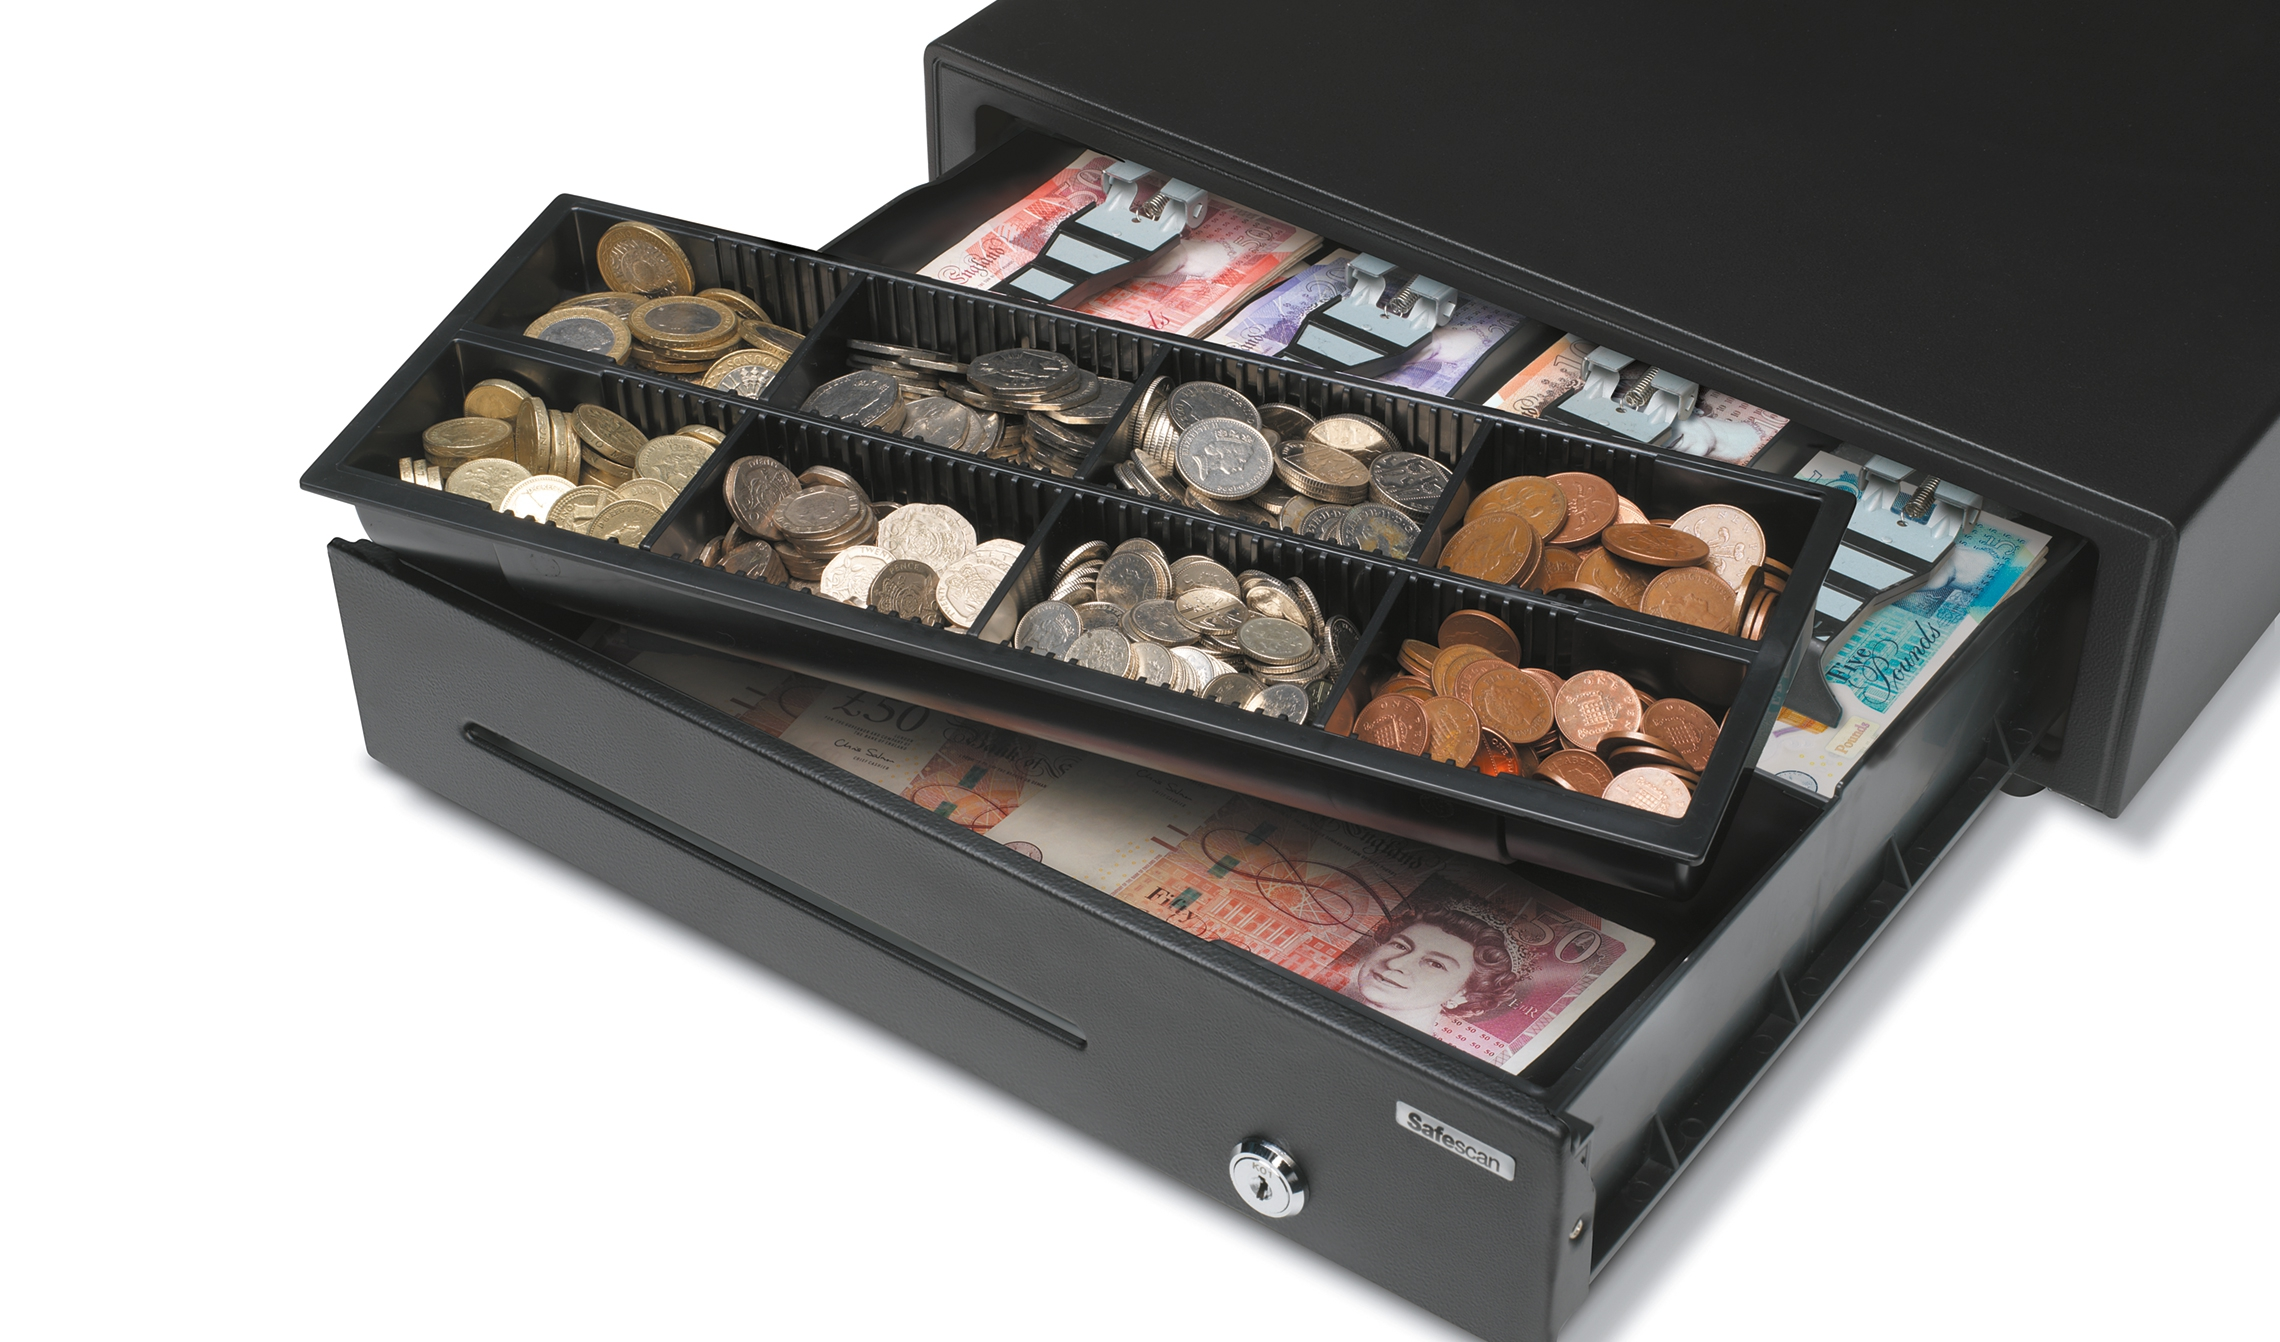 safescan-ld4141-removable-tray